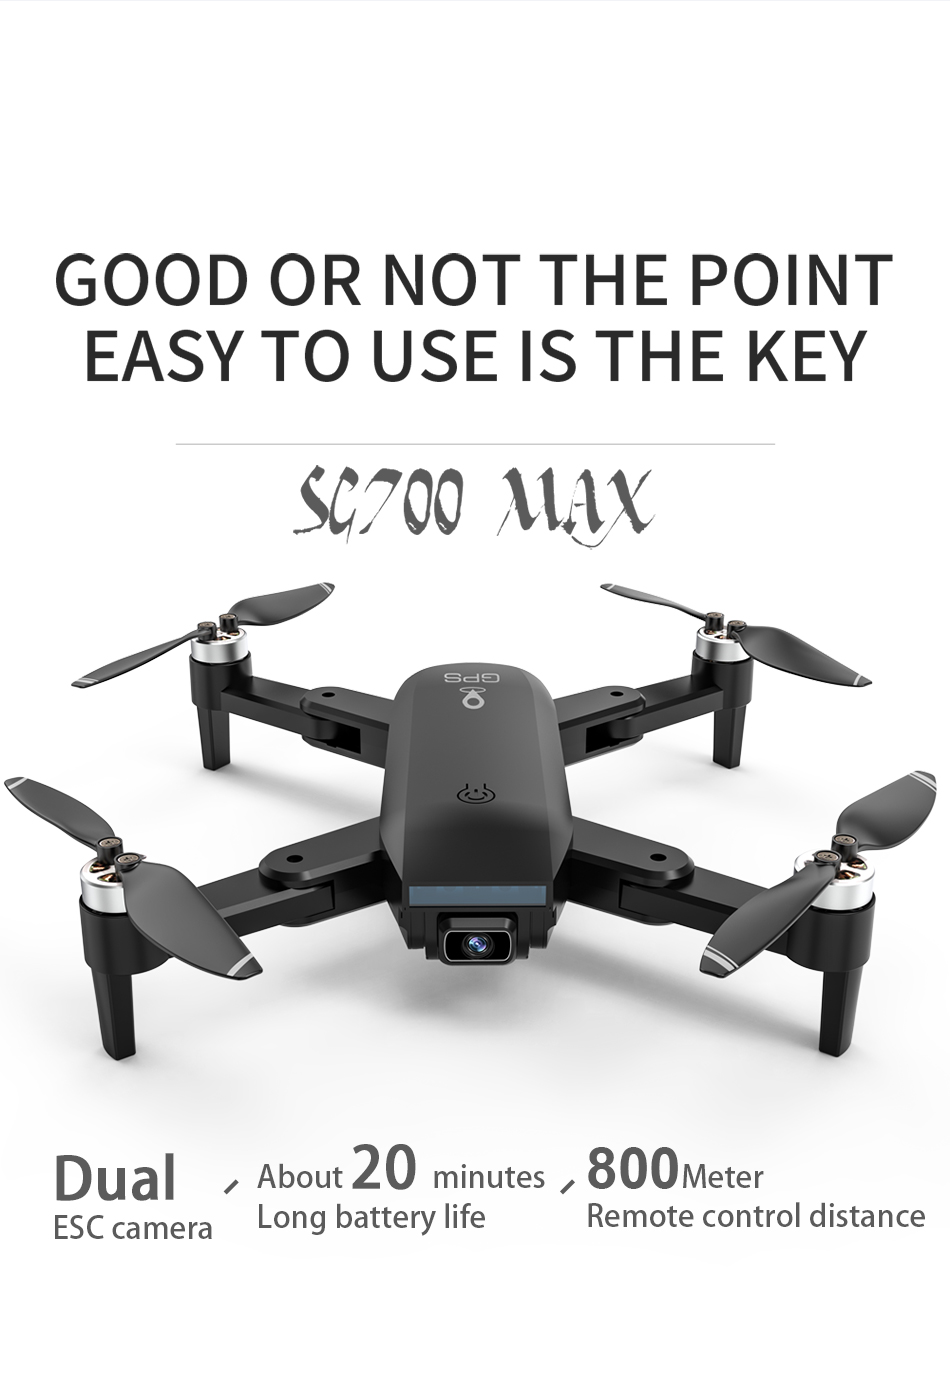 H00d646abf1d241a6a5684479e425bfcfF - ZLL SG700 MAX Drone GPS 5G WiFi Dual Camera Brushless Motor Flight RC Distance 800m SG700 Pro Foldable Professional Quadcopter